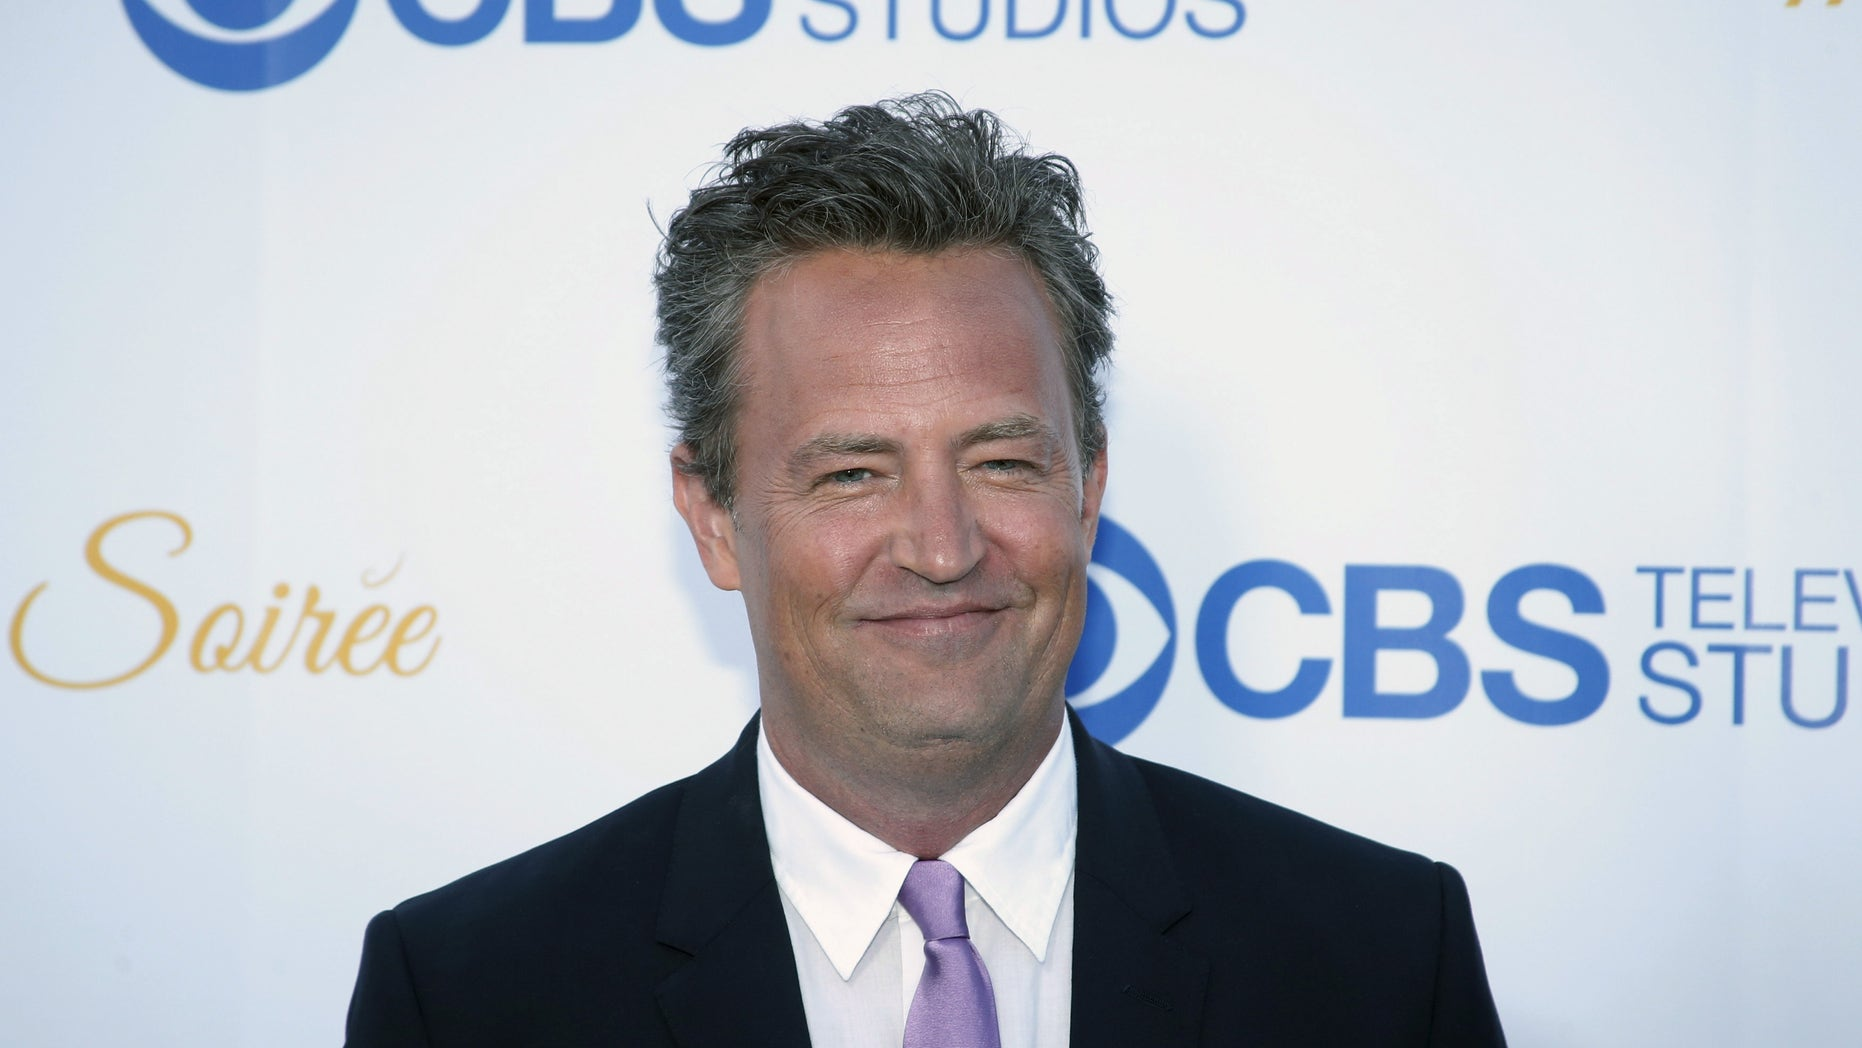 Matthew Perry underwent surgery to repair a gastrointestinal perforation, the actor's rep says.